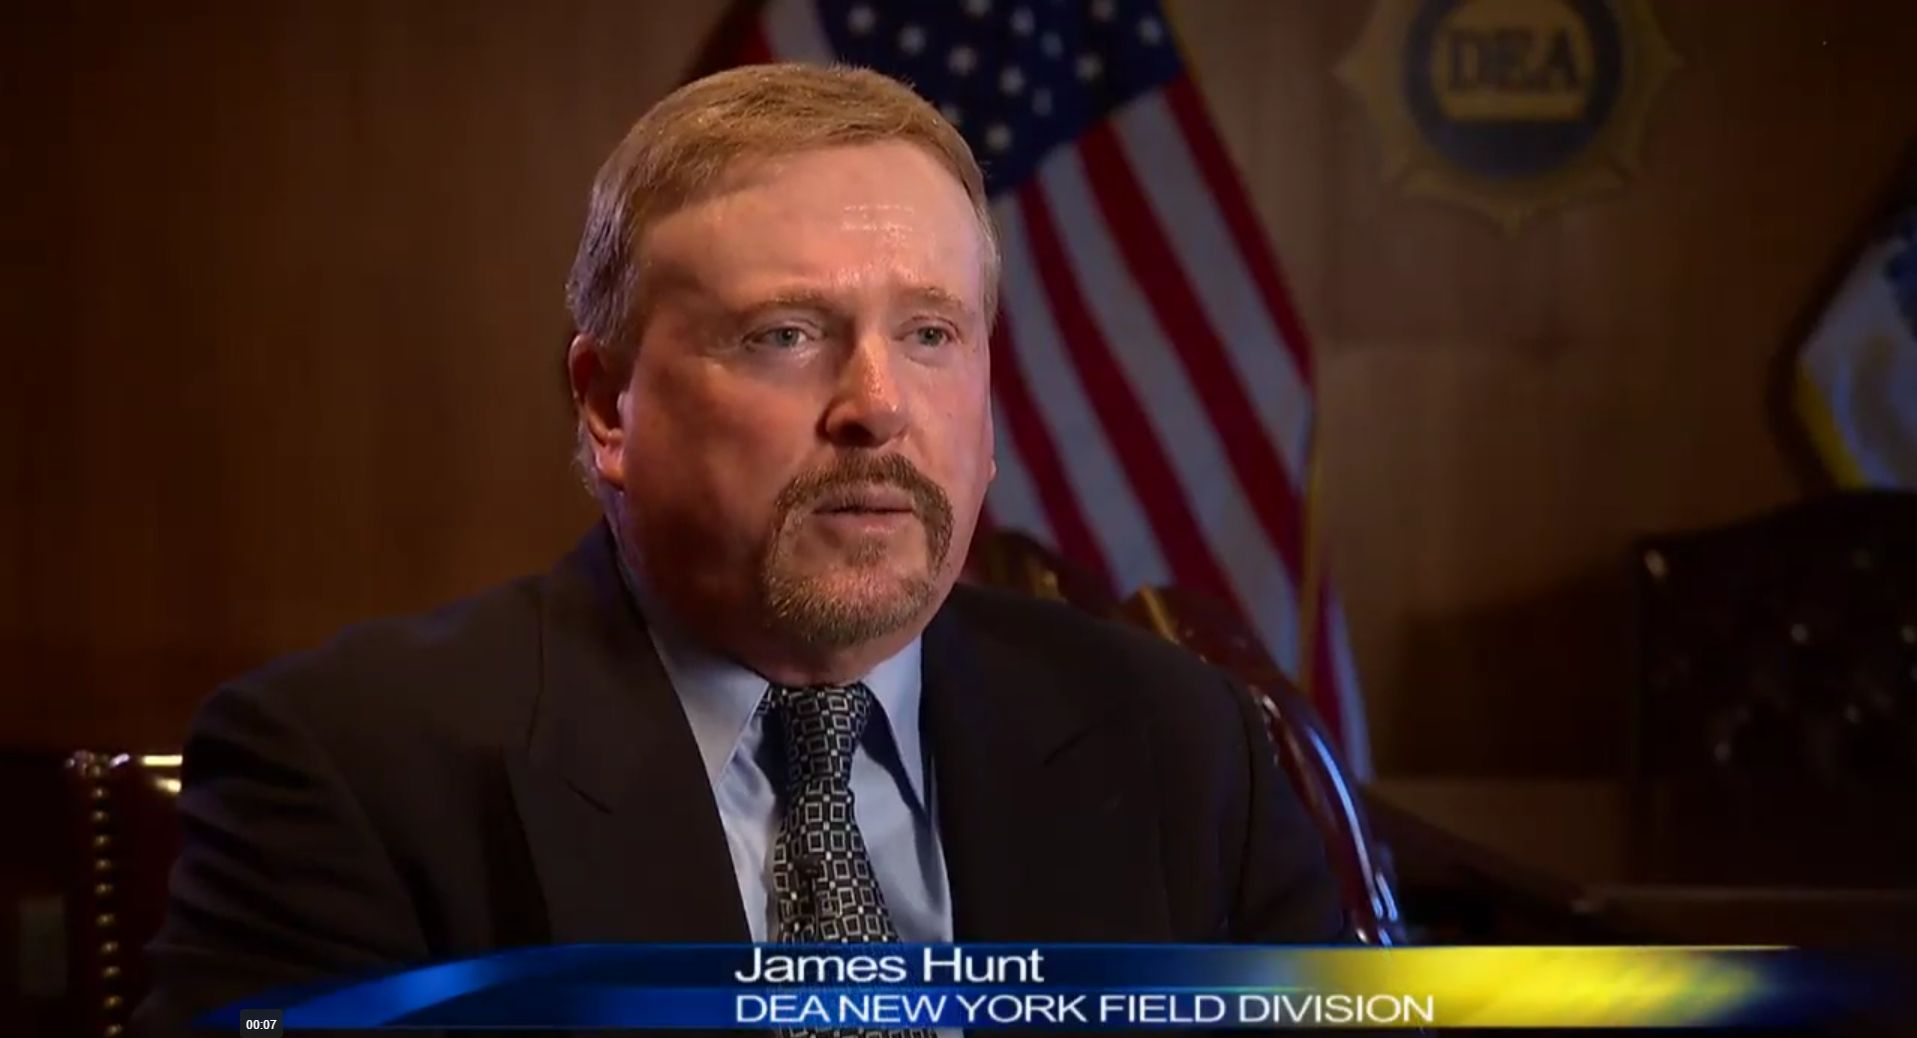 Operation Cyber Juice: DEA Special Agent James Hunt Says